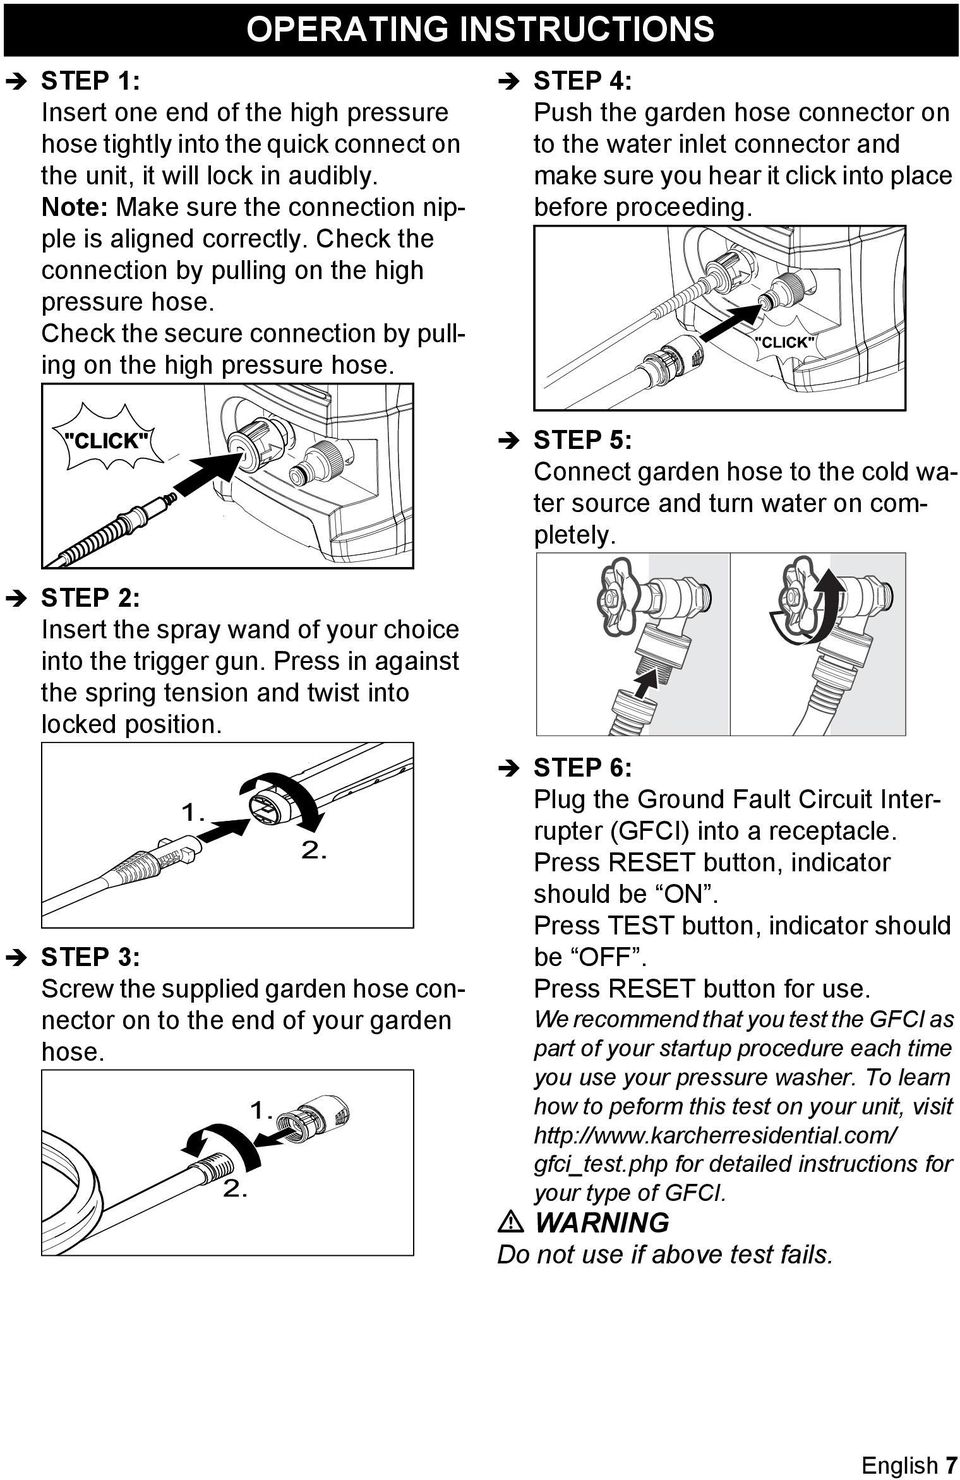 OPERATING INSTRUCTIONS STEP 4: Push the garden hose connector on to the water inlet connector and make sure you hear it click into place before proceeding.